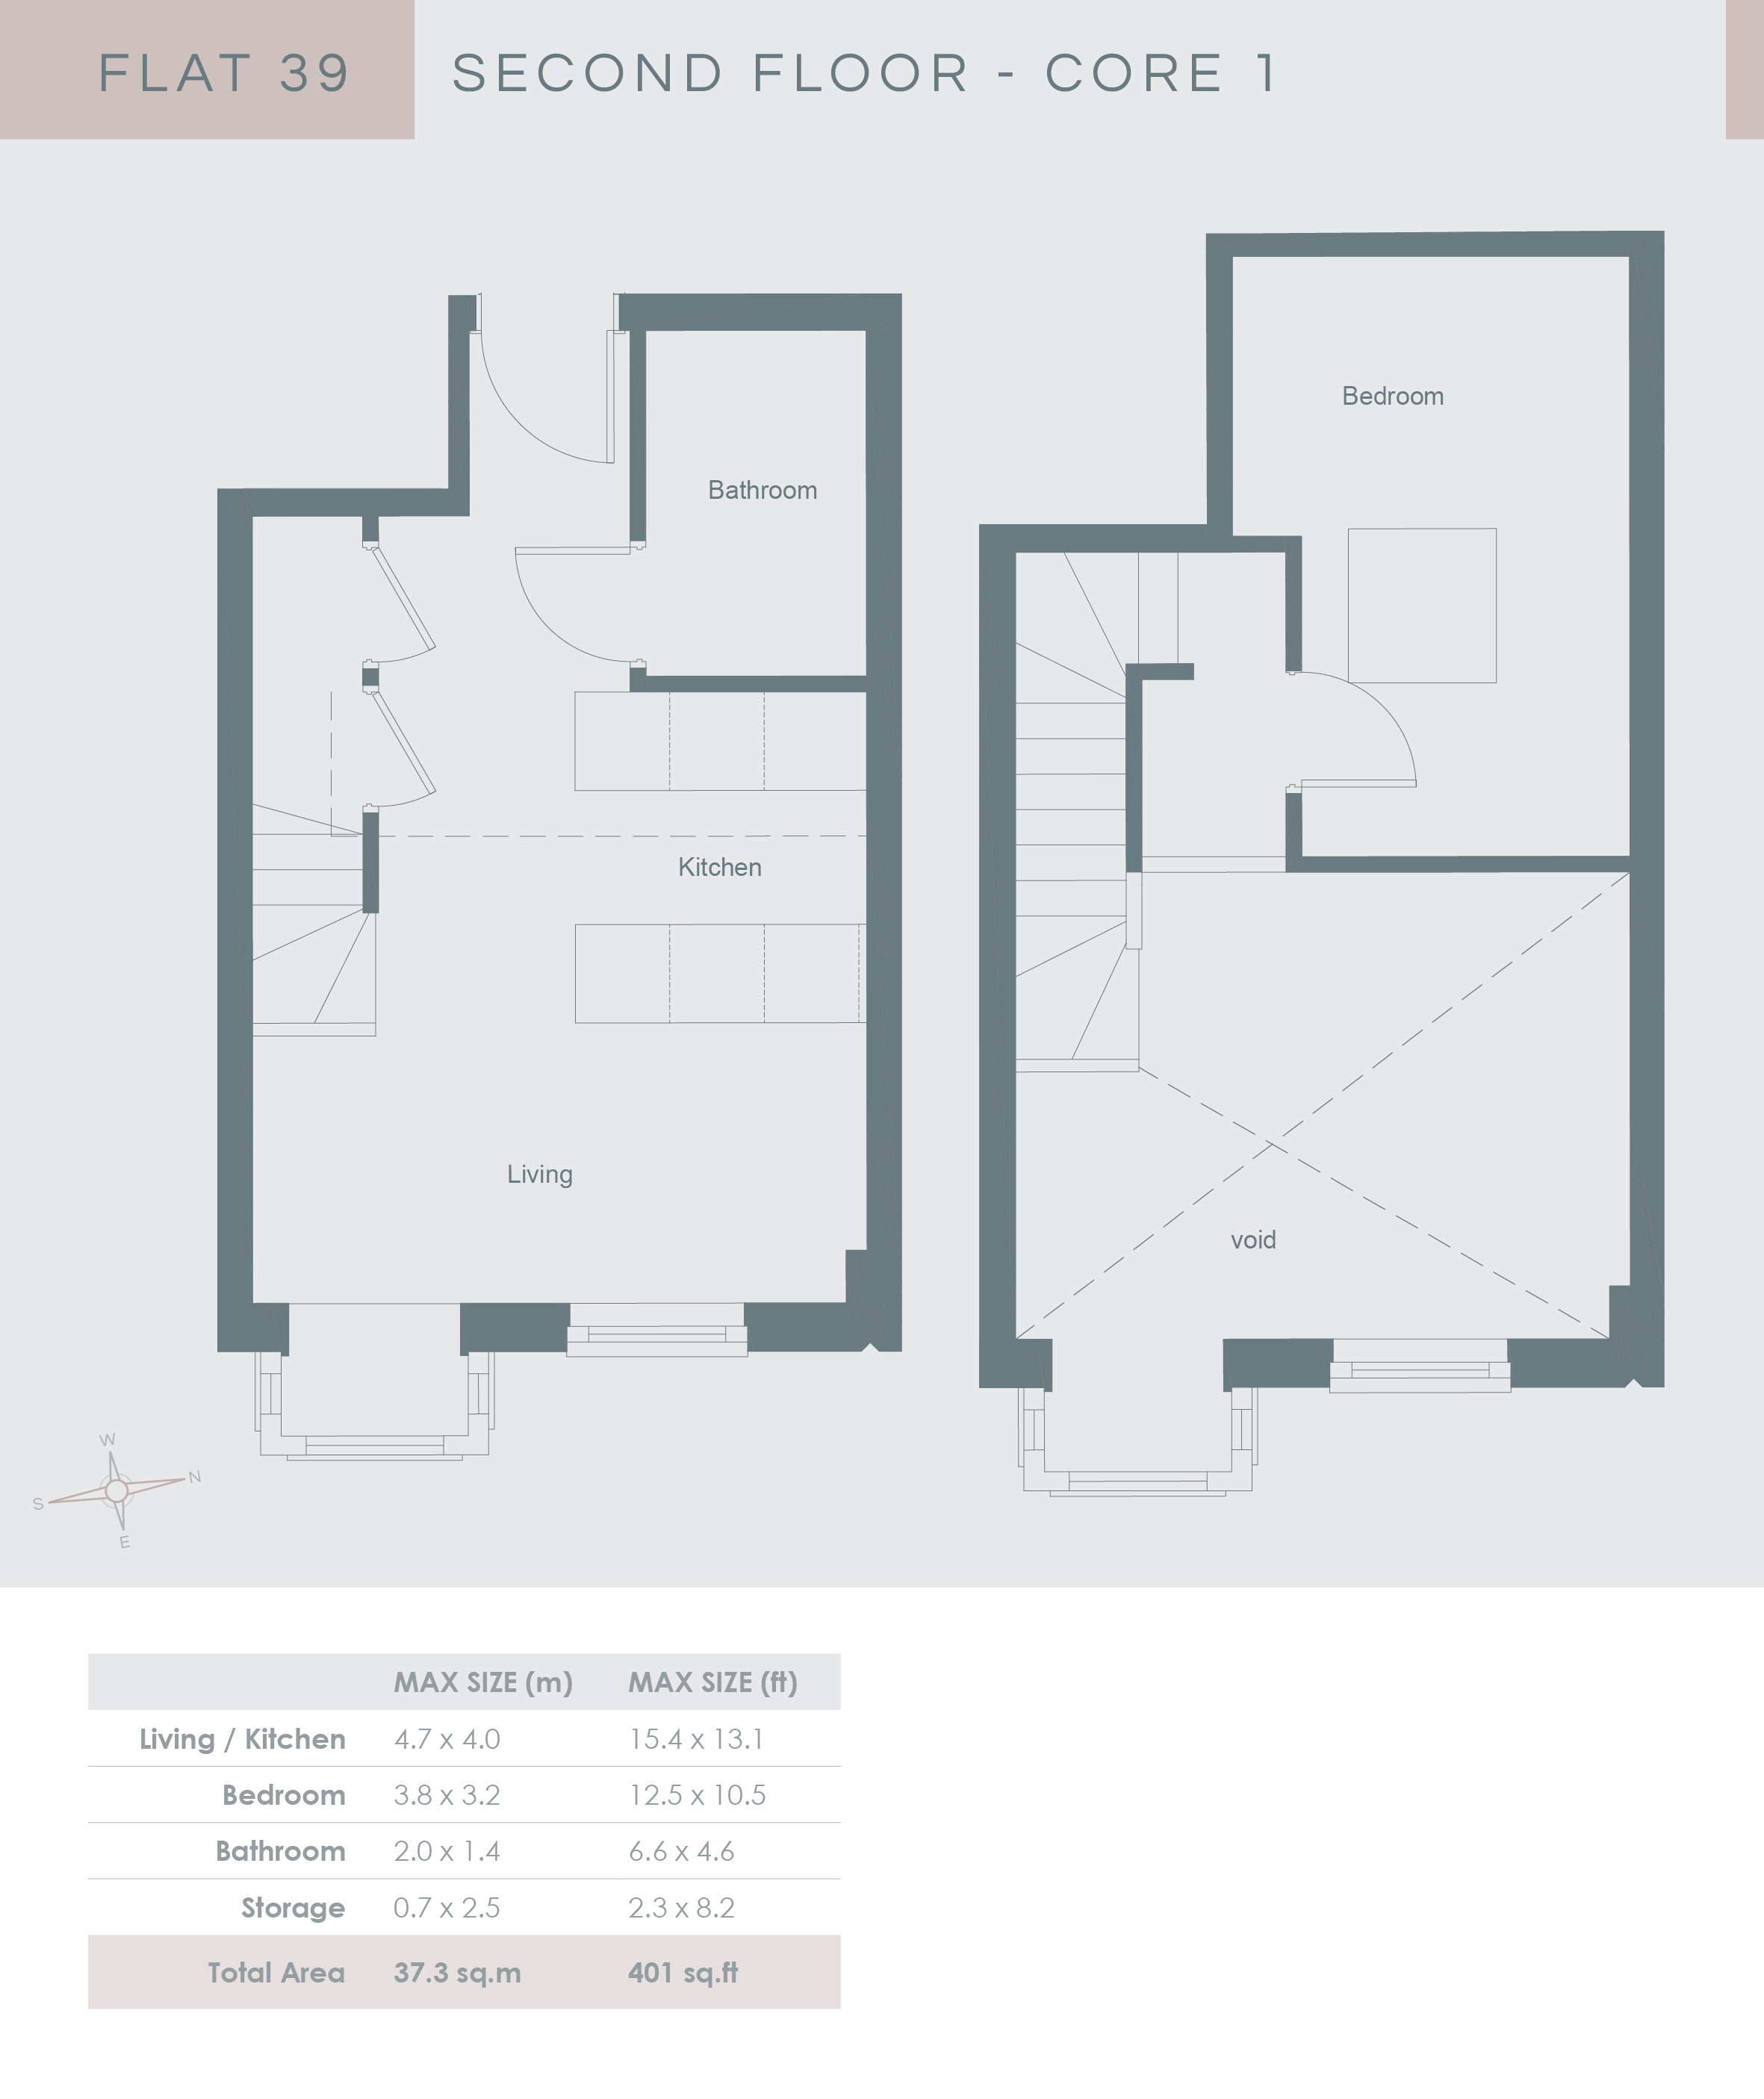 5 x 8 bathroom floor plans - Second Floor Core 1